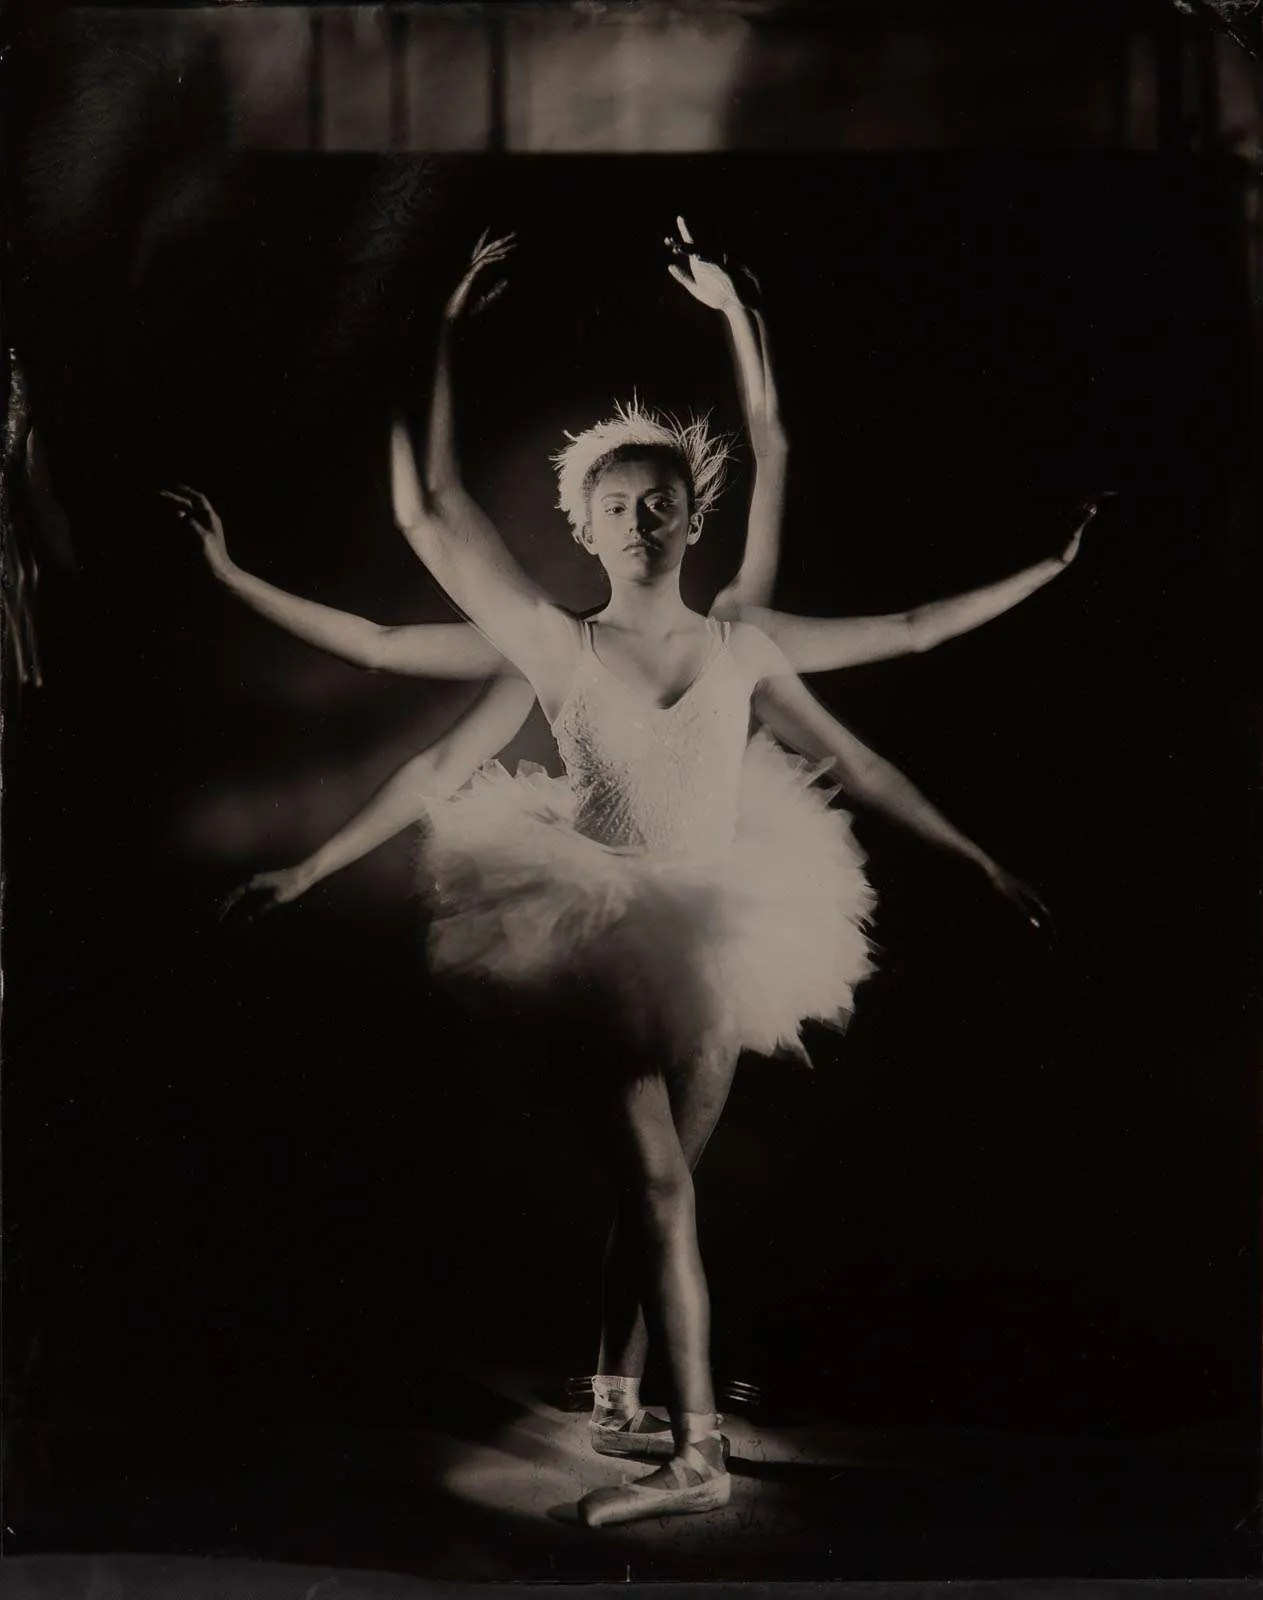 Light painting ballerina talent from The Dutch National Ballet Academie on ambrotype wet plate collodion